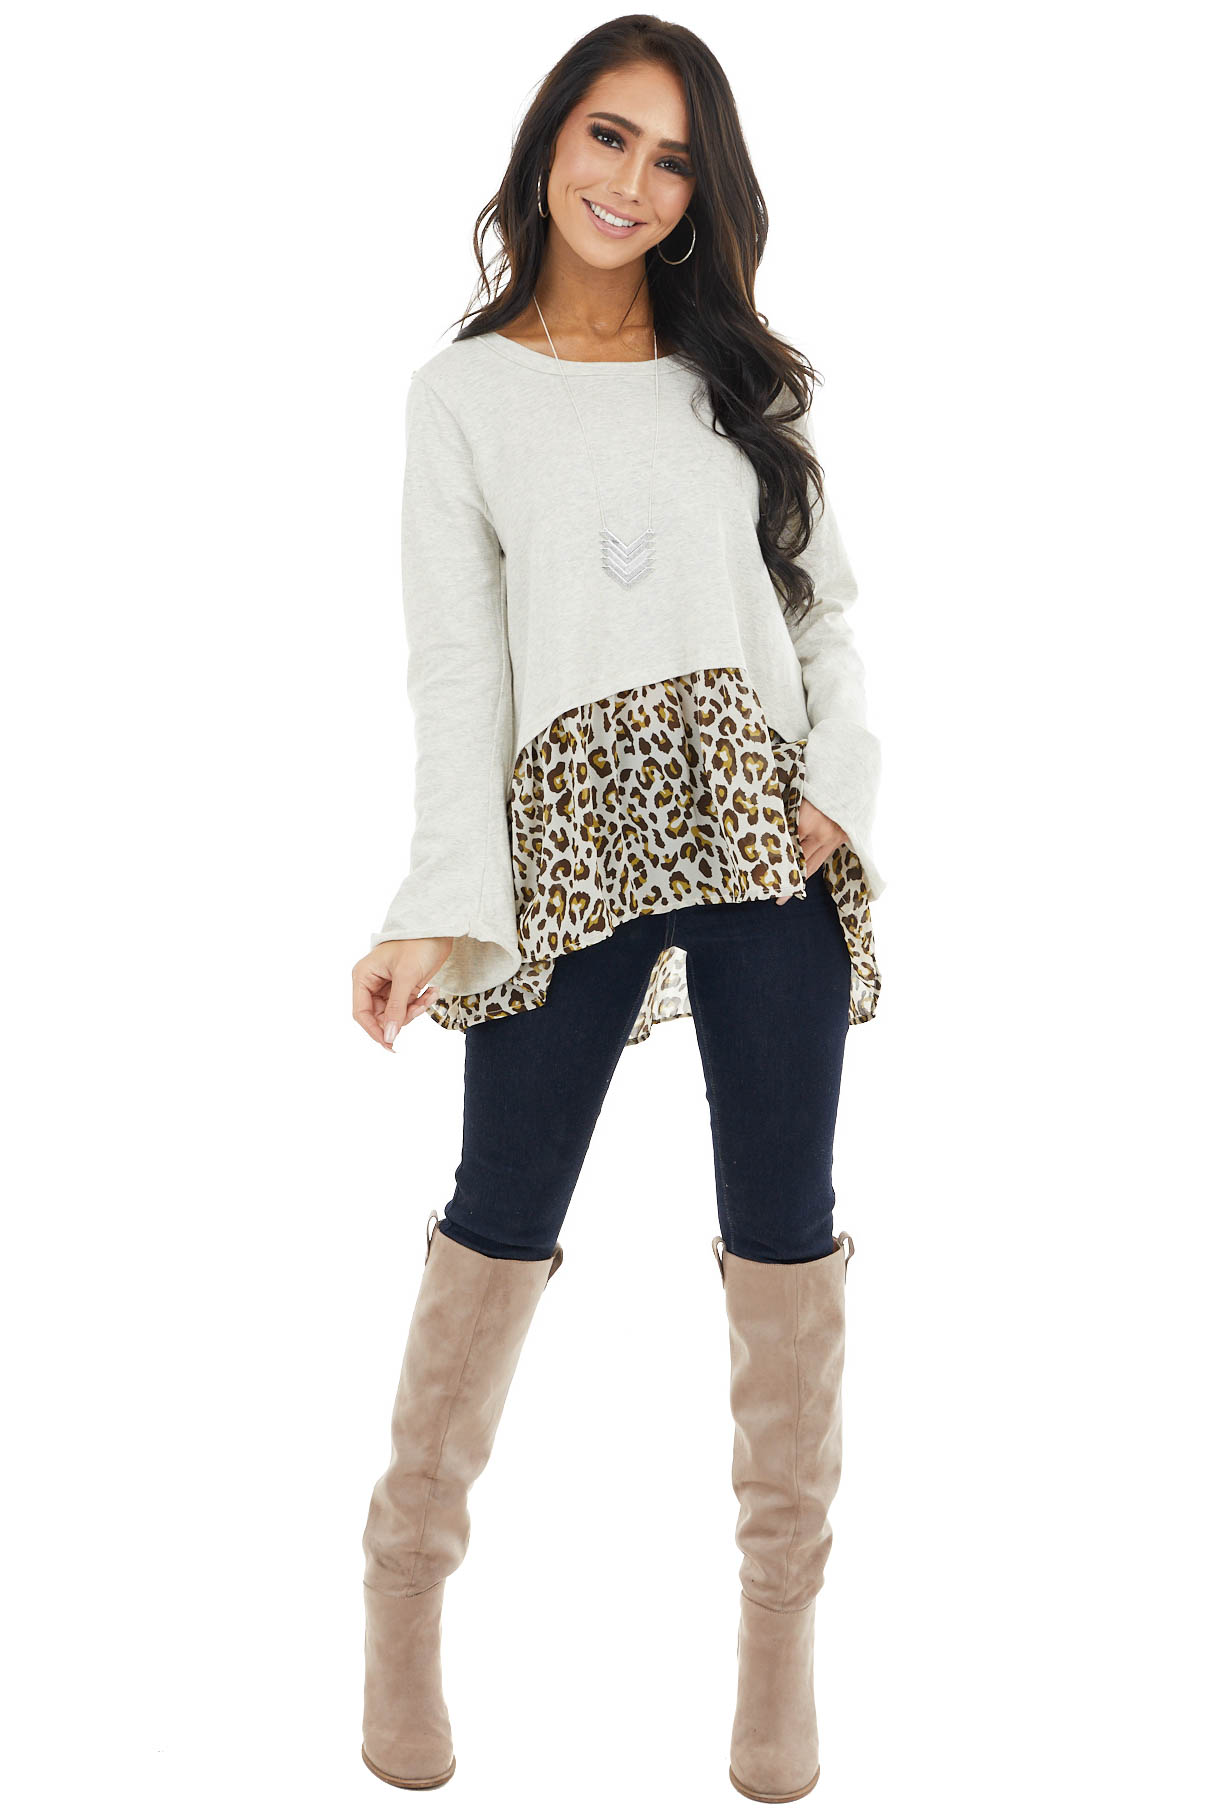 Oatmeal Leopard Print Peplum Top with Raw Edge Details